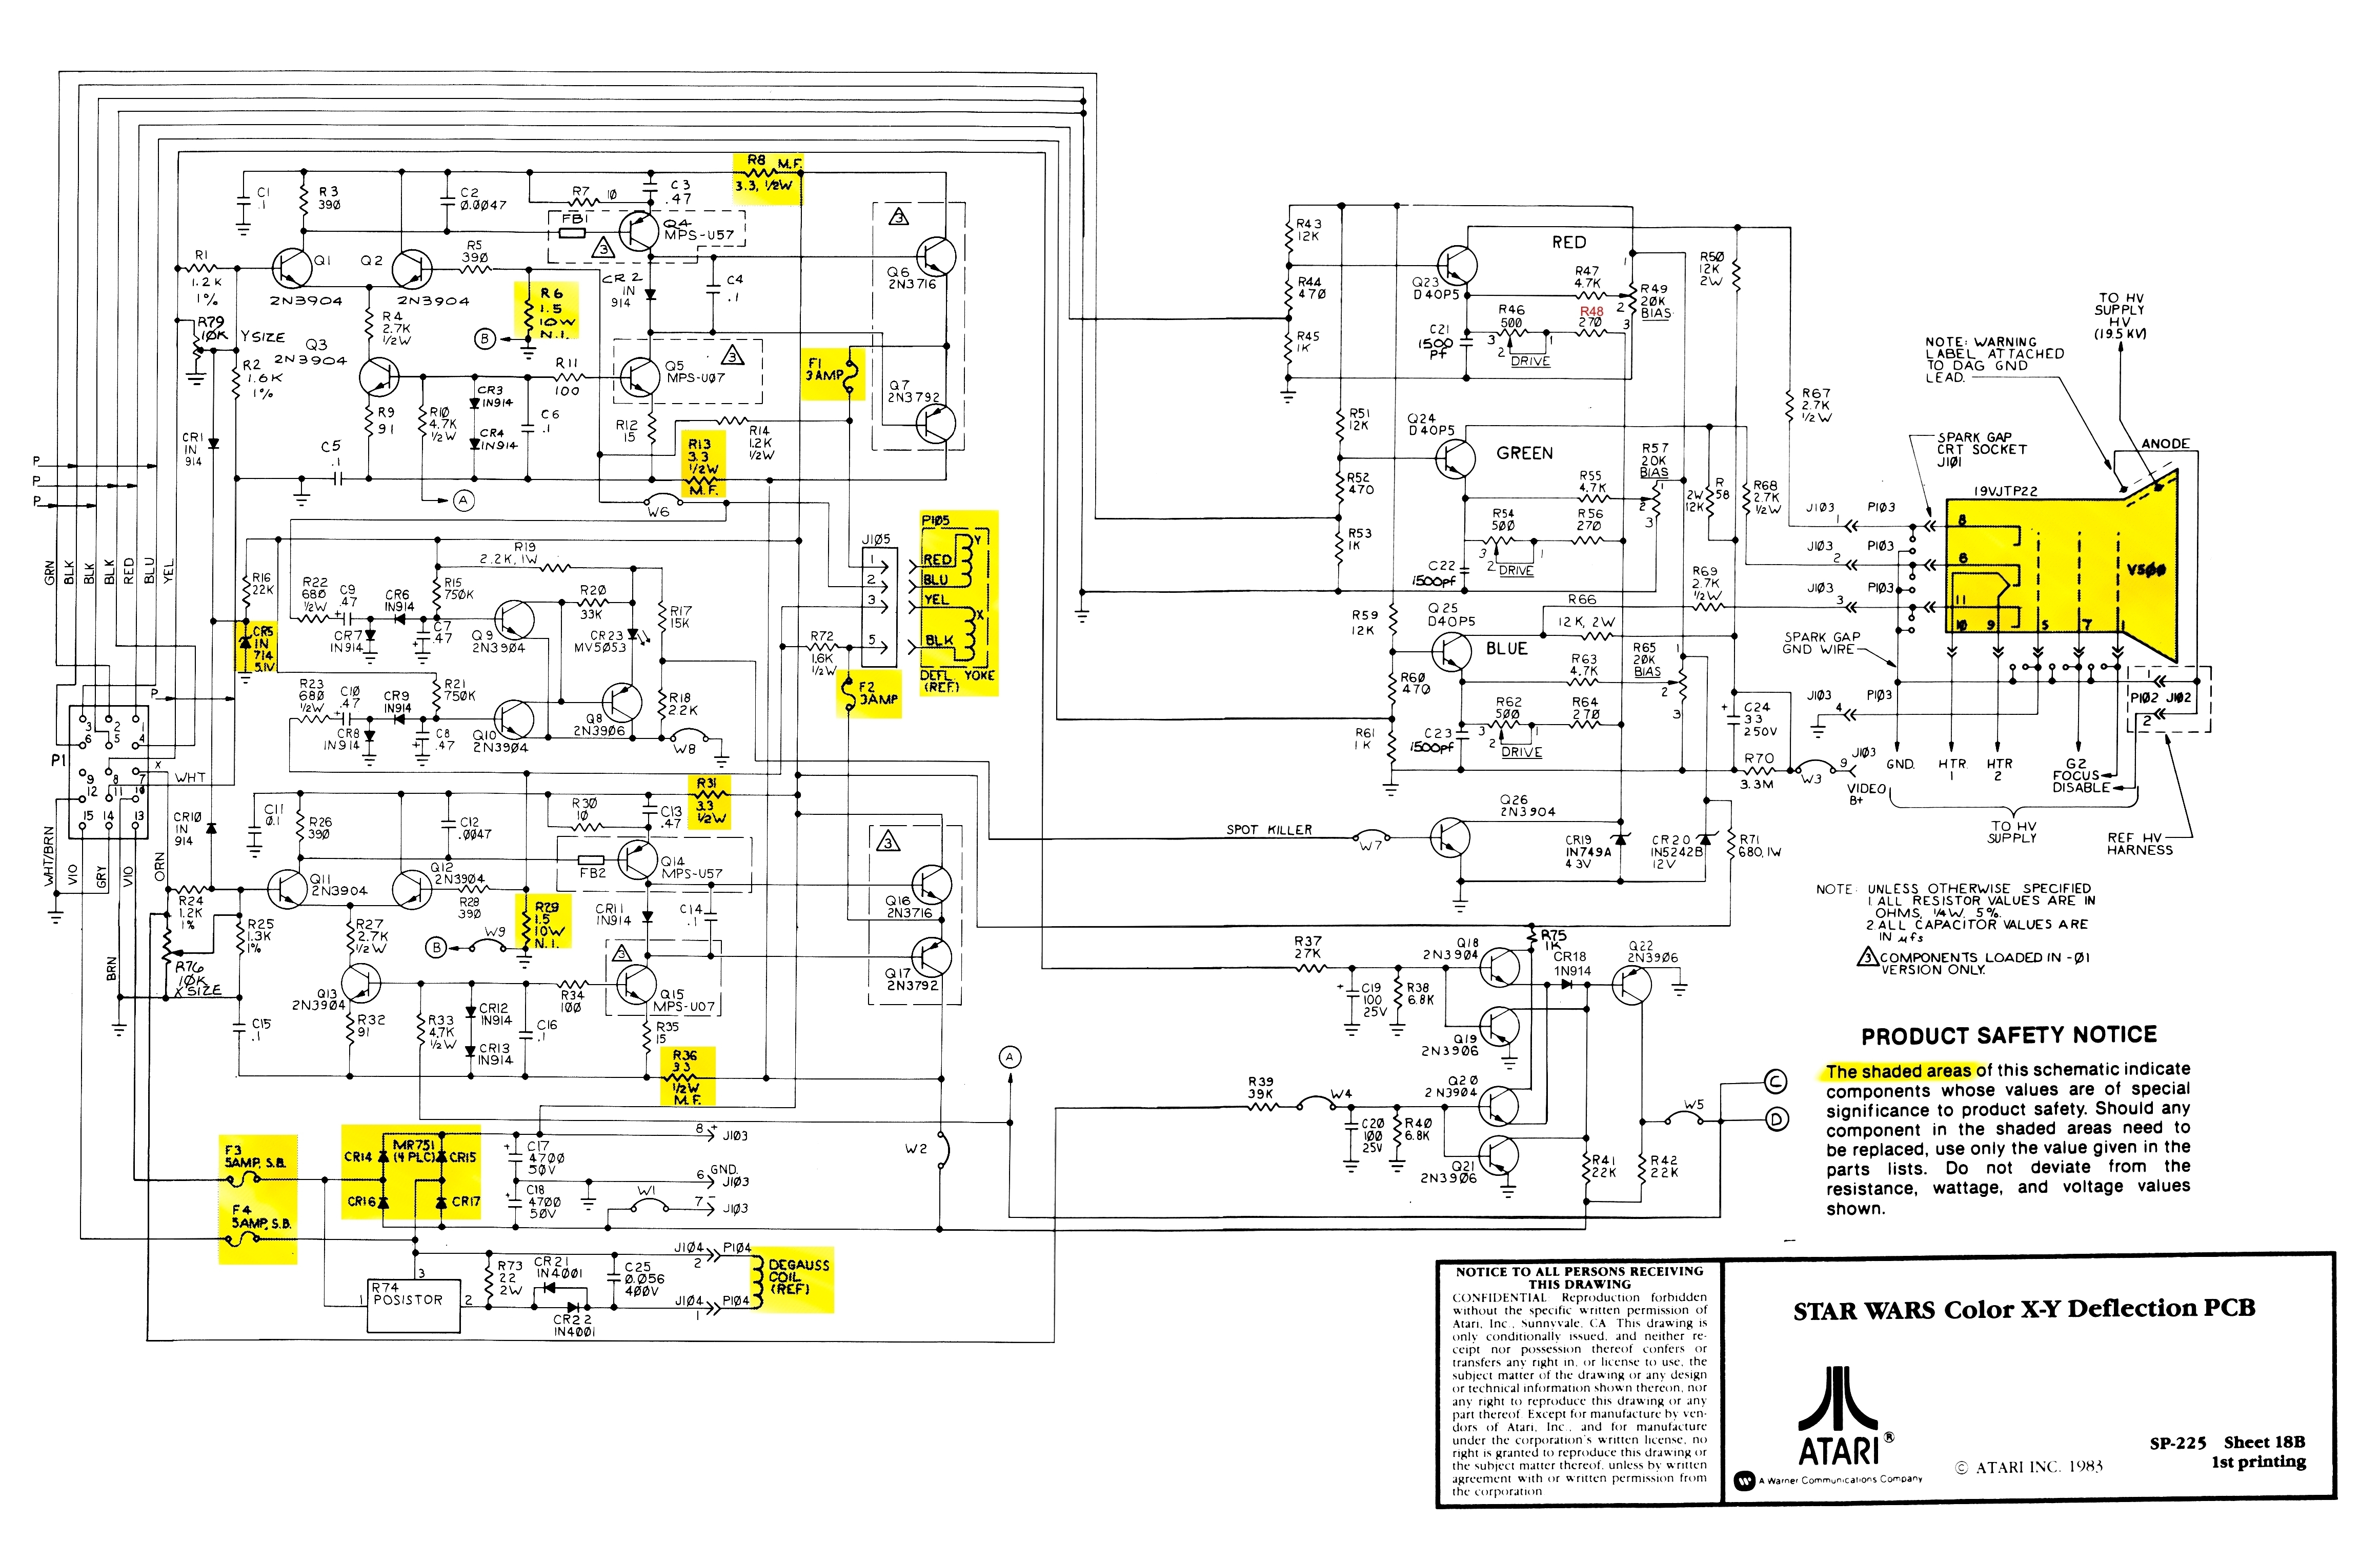 Crt Monitor Pcb Diagram Wiring Diagrams Schematic Circuit Get Free Image About Tv